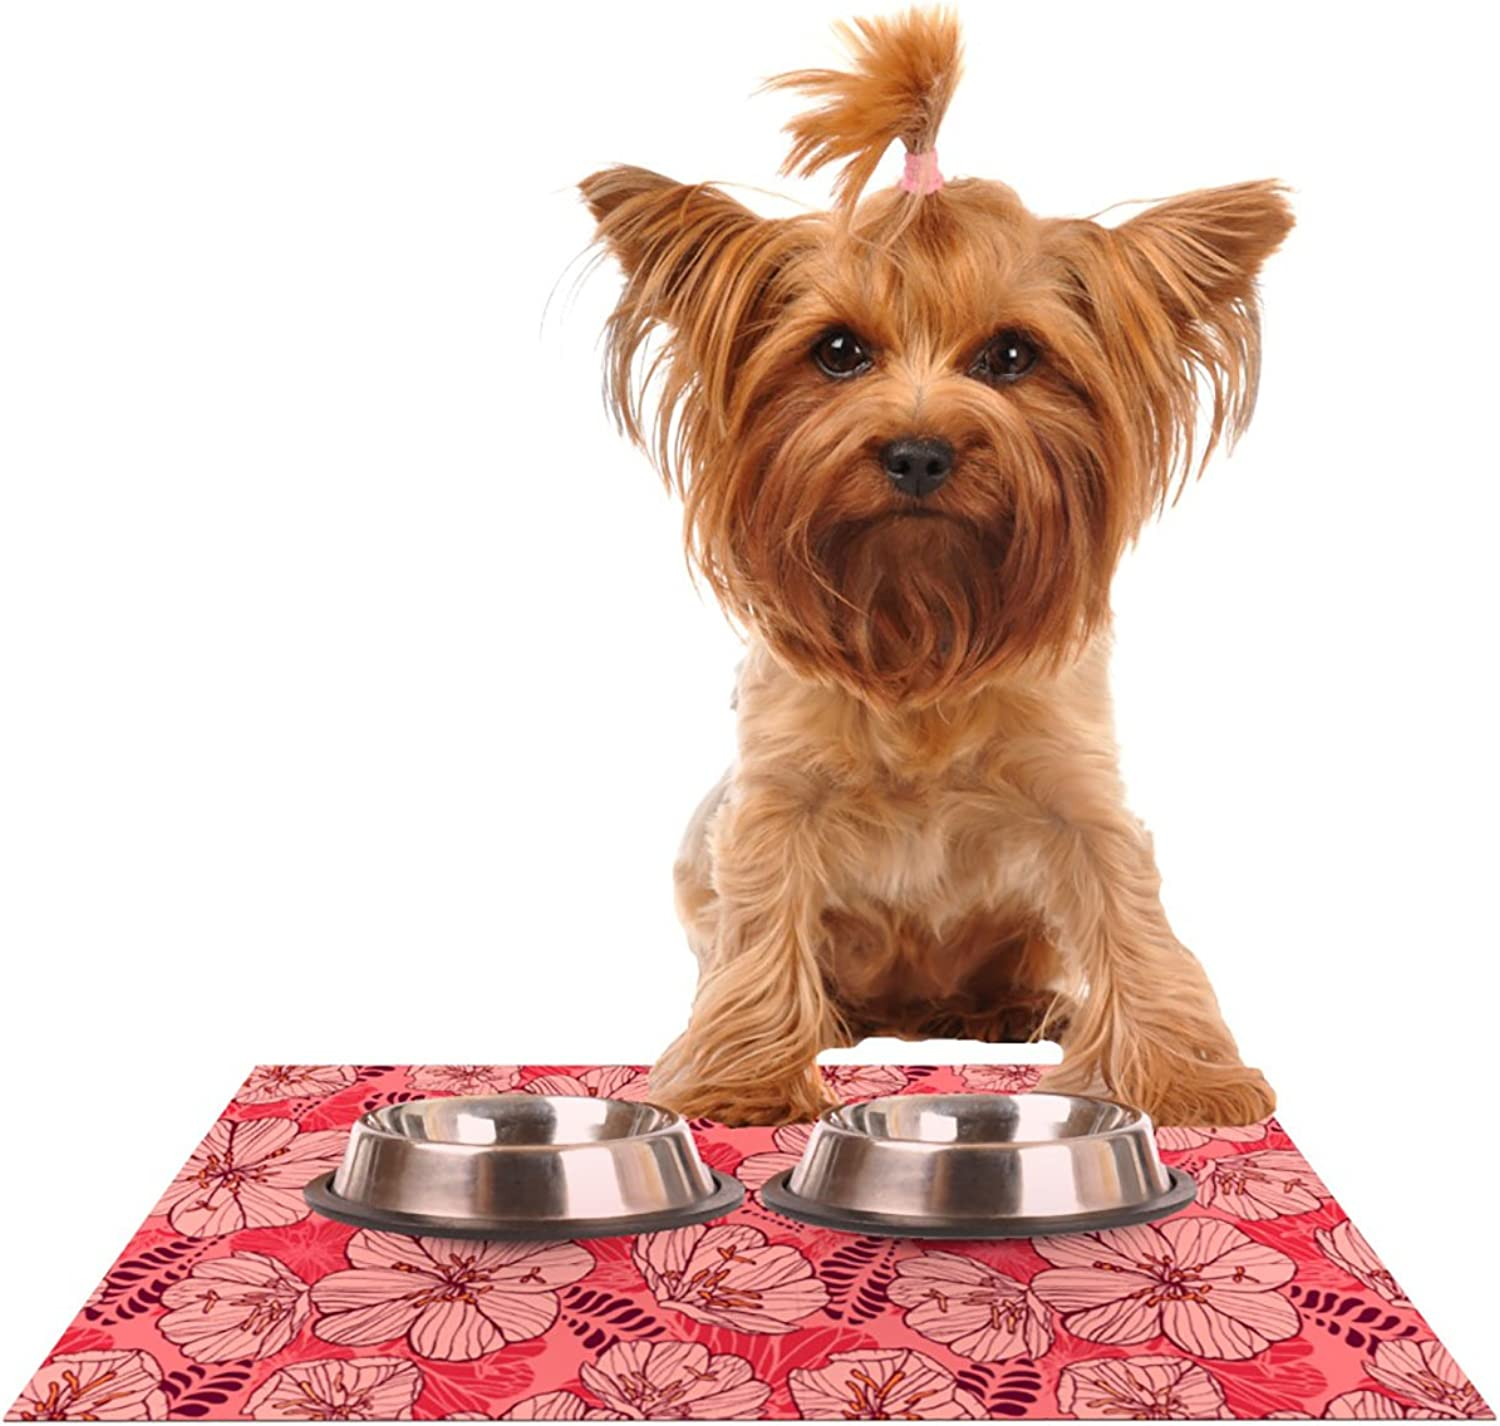 Kess InHouse Suzie Tremel Flutter Floral  Pet Bowl Placemat for Dog and Cat Feeding Mat, 24 by 15Inch, Red Petals